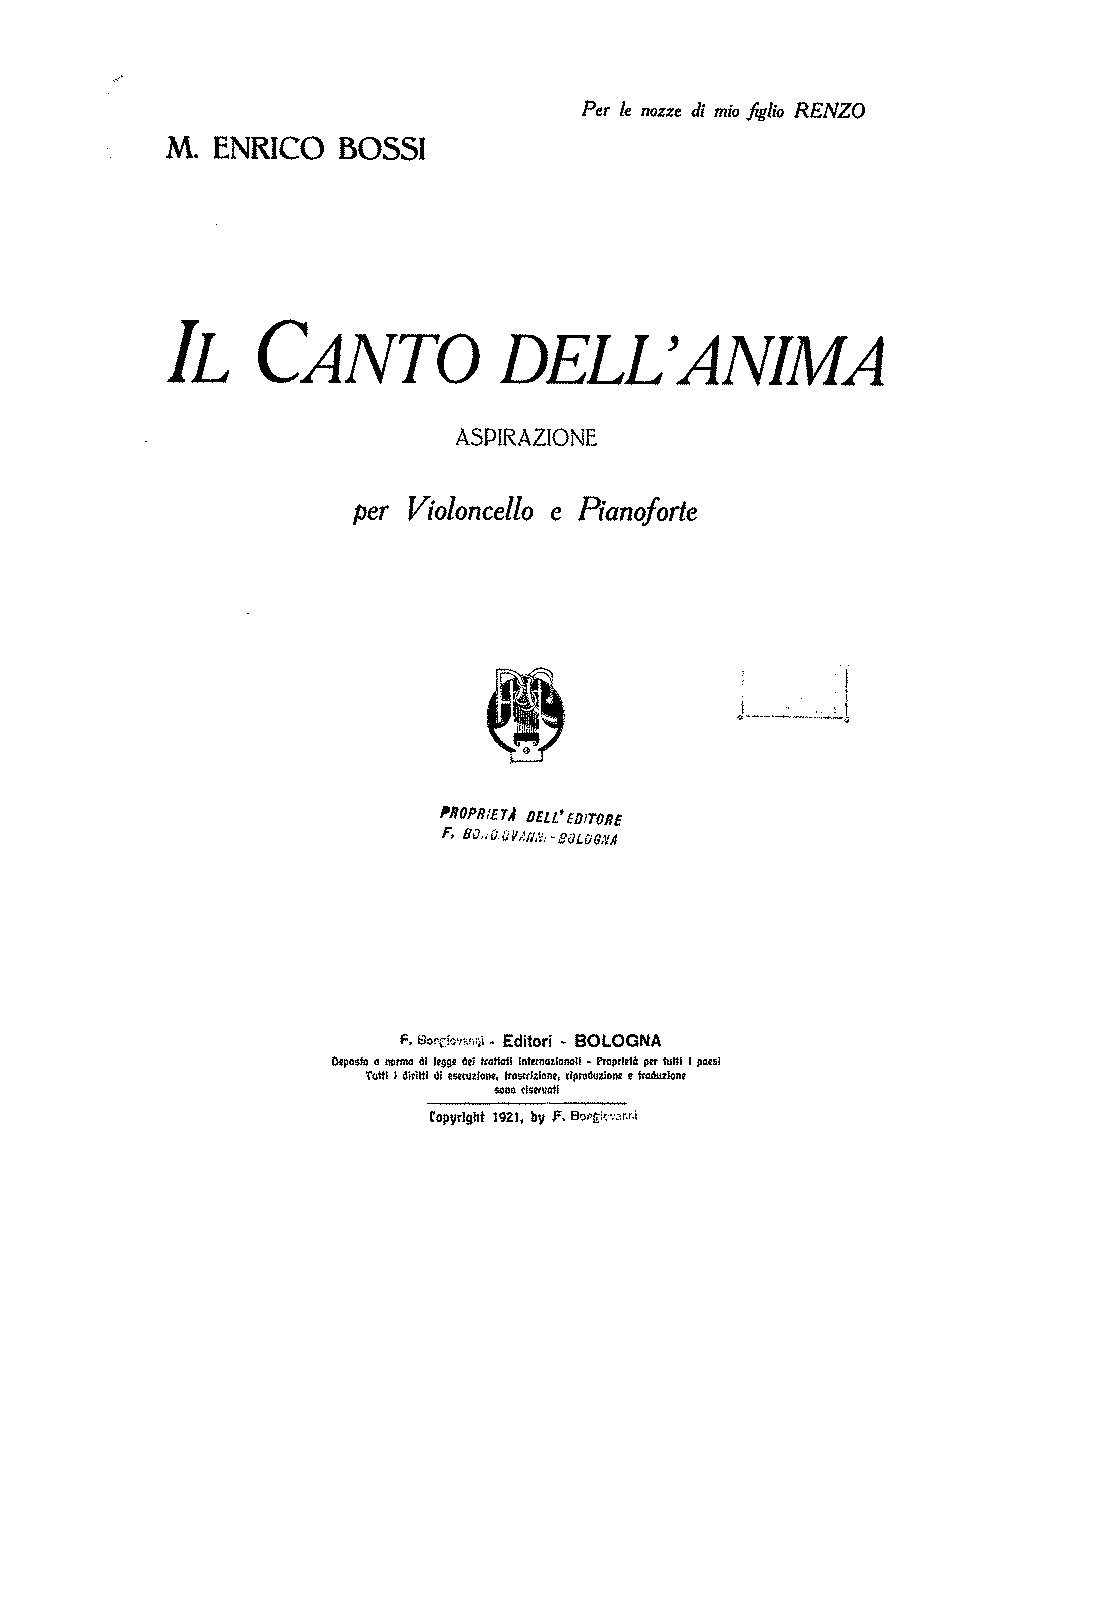 PMLP136032-Bossi - Il canto dell anima Aspirazione for Cello and Piano score.pdf